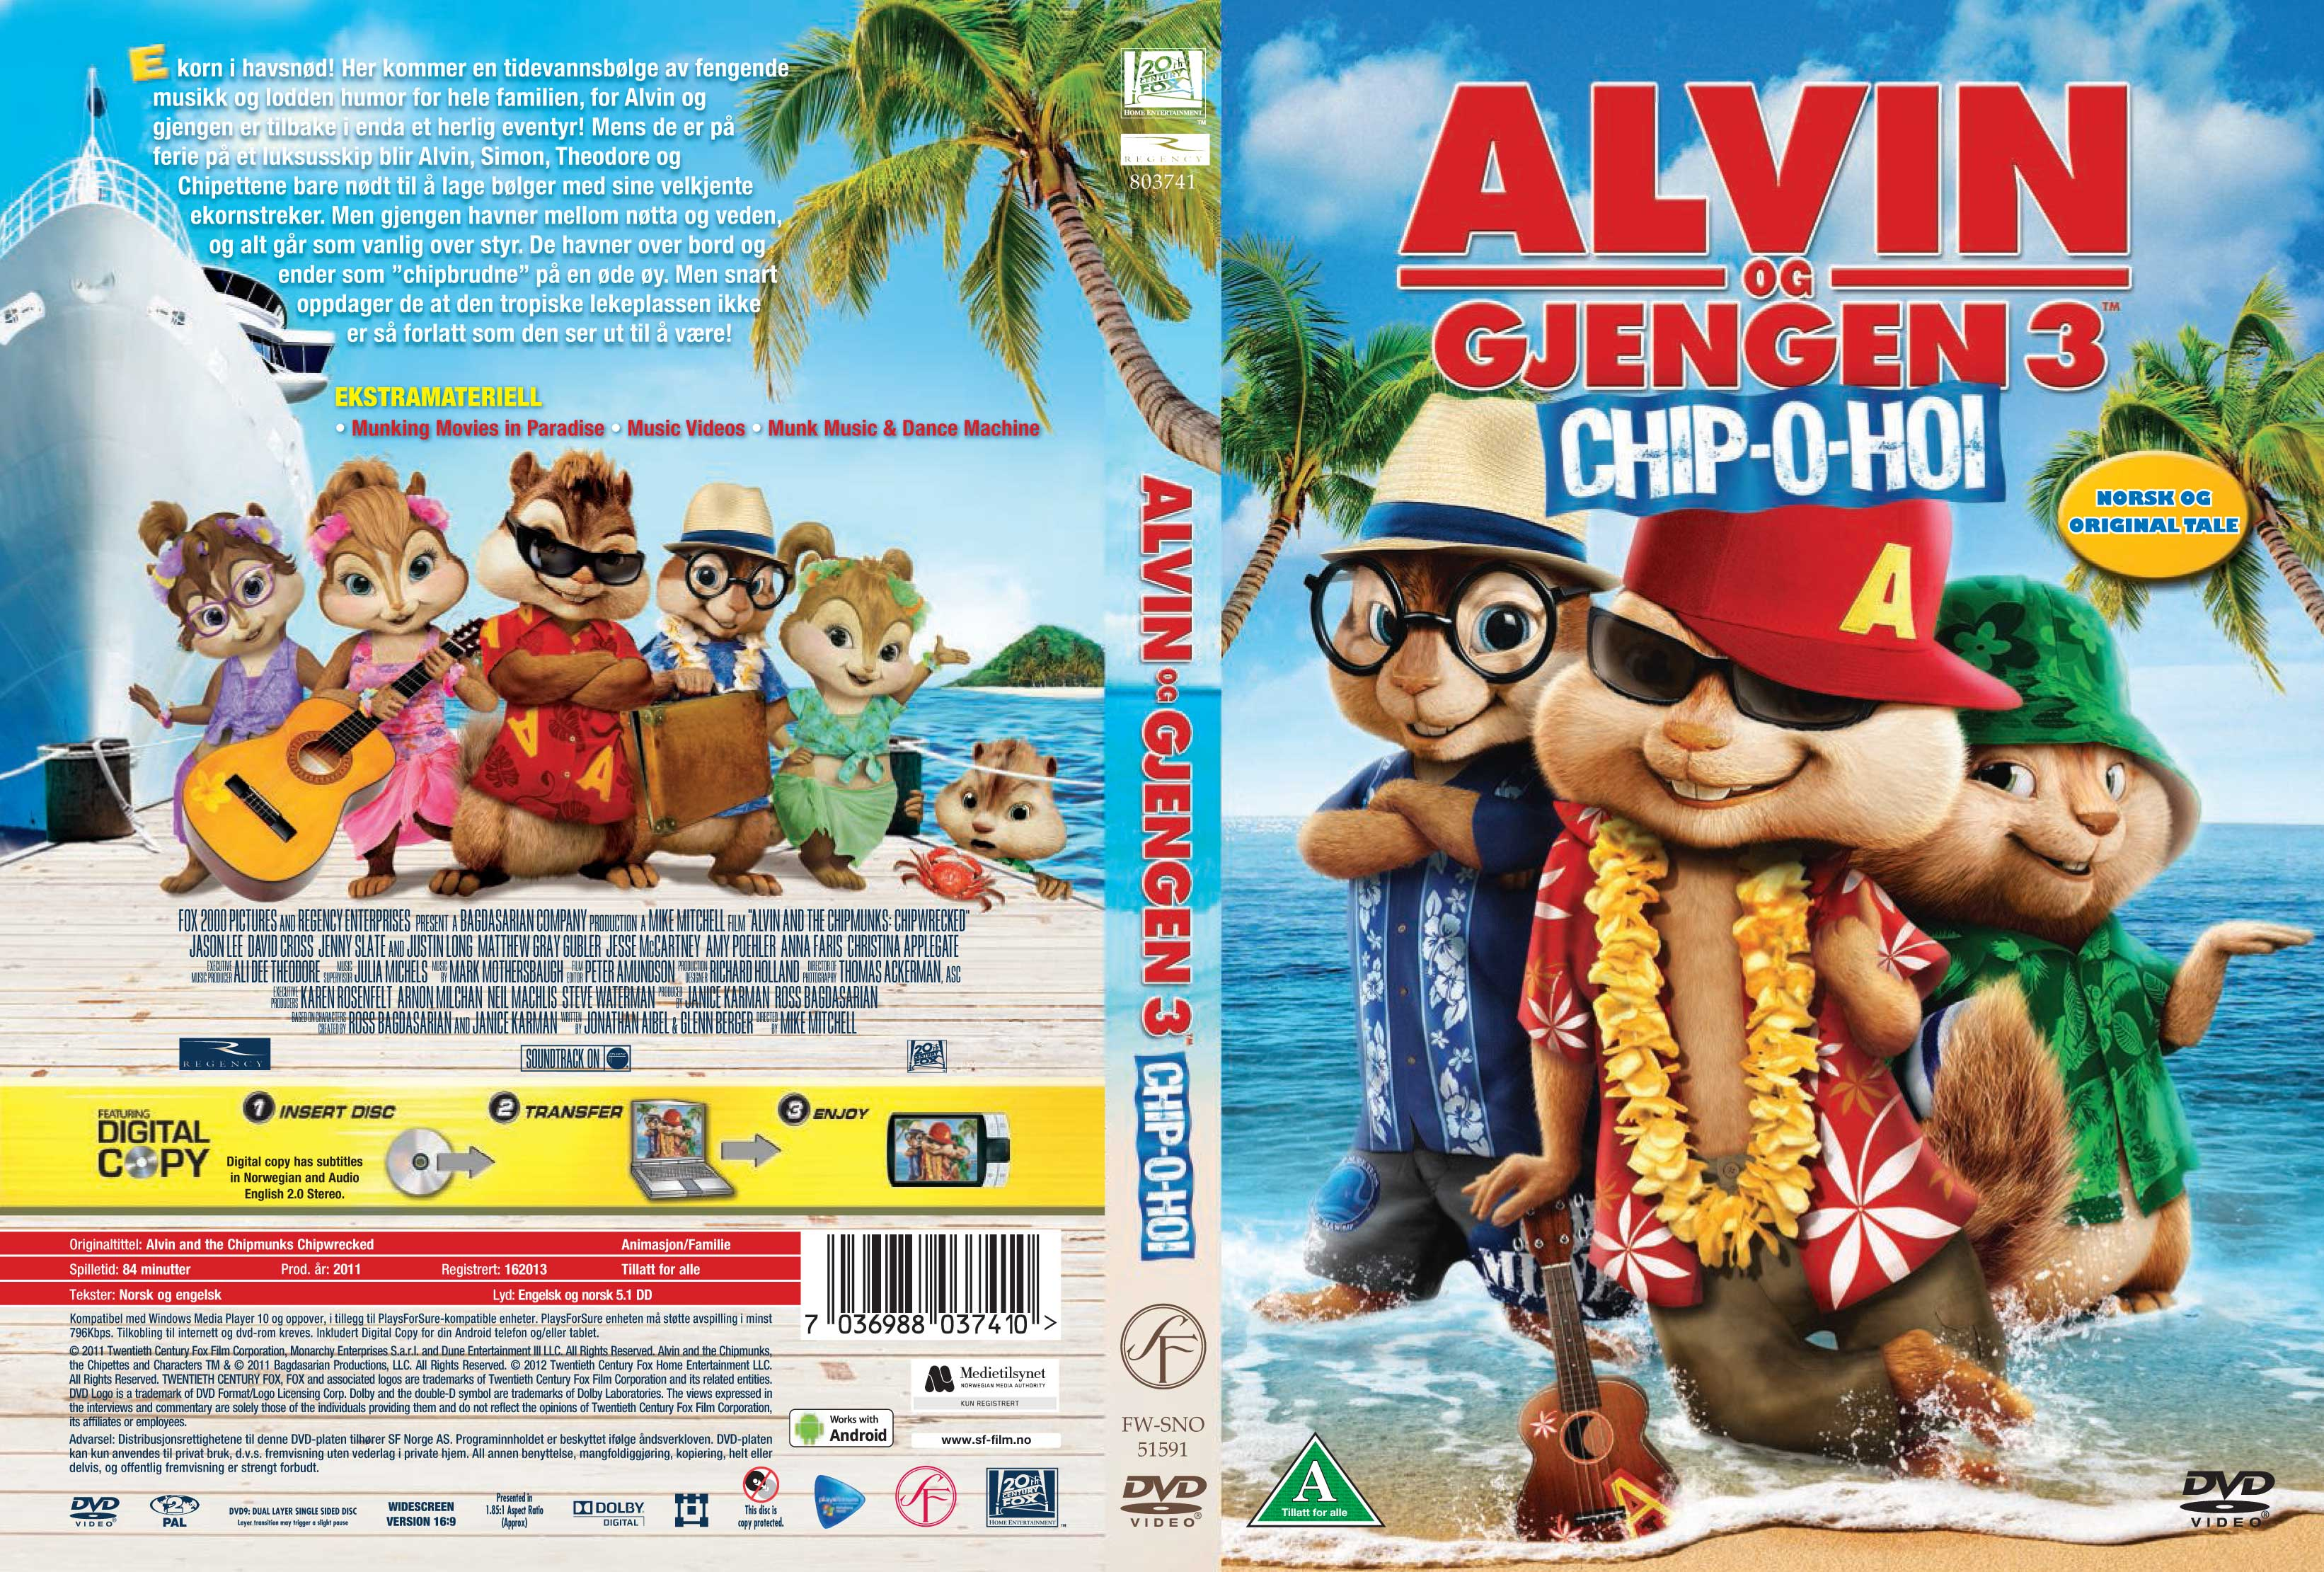 Alvin And The Chipmunks 3 Images covers.box.sk ::: alvin and the chipmunks 3 (2011) - high